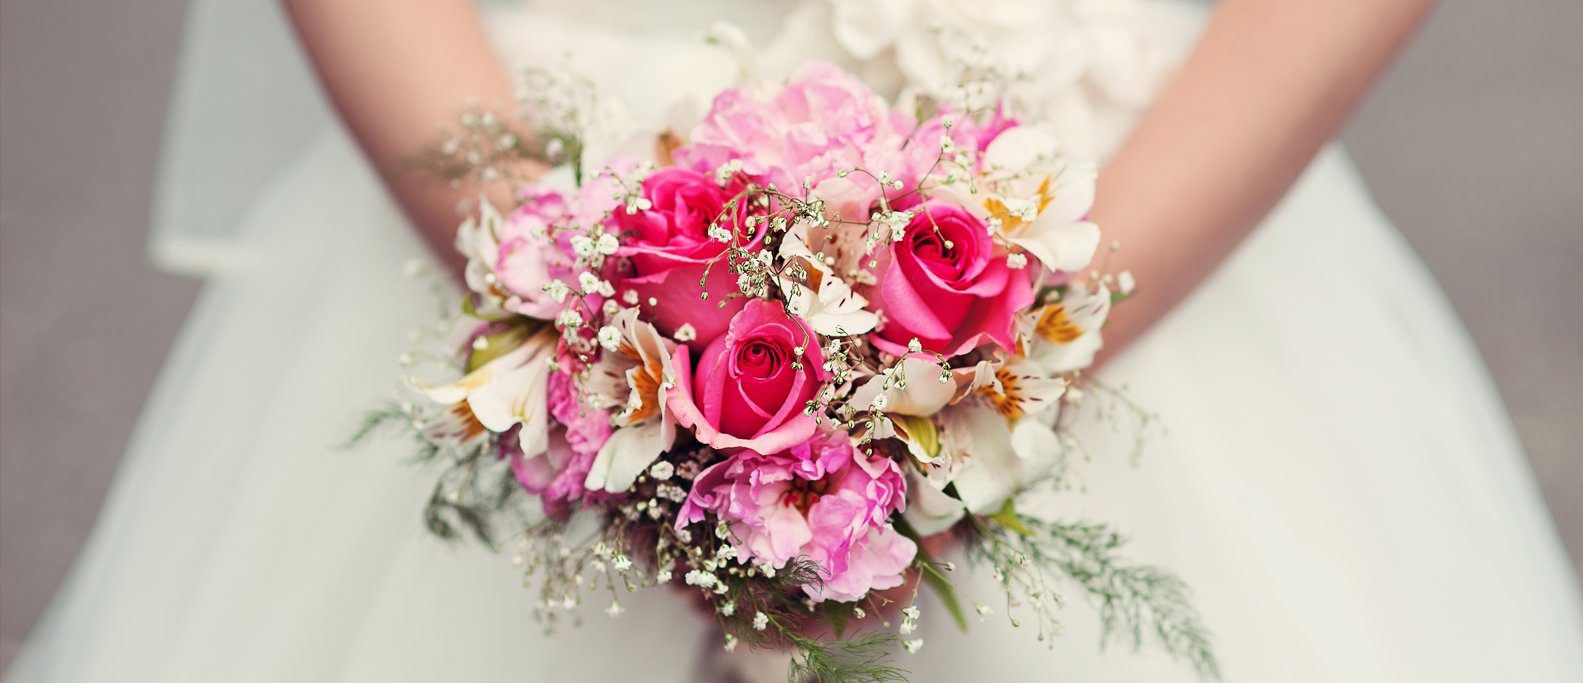 Bride Bouquet - Wedding Photography with Focus on Details